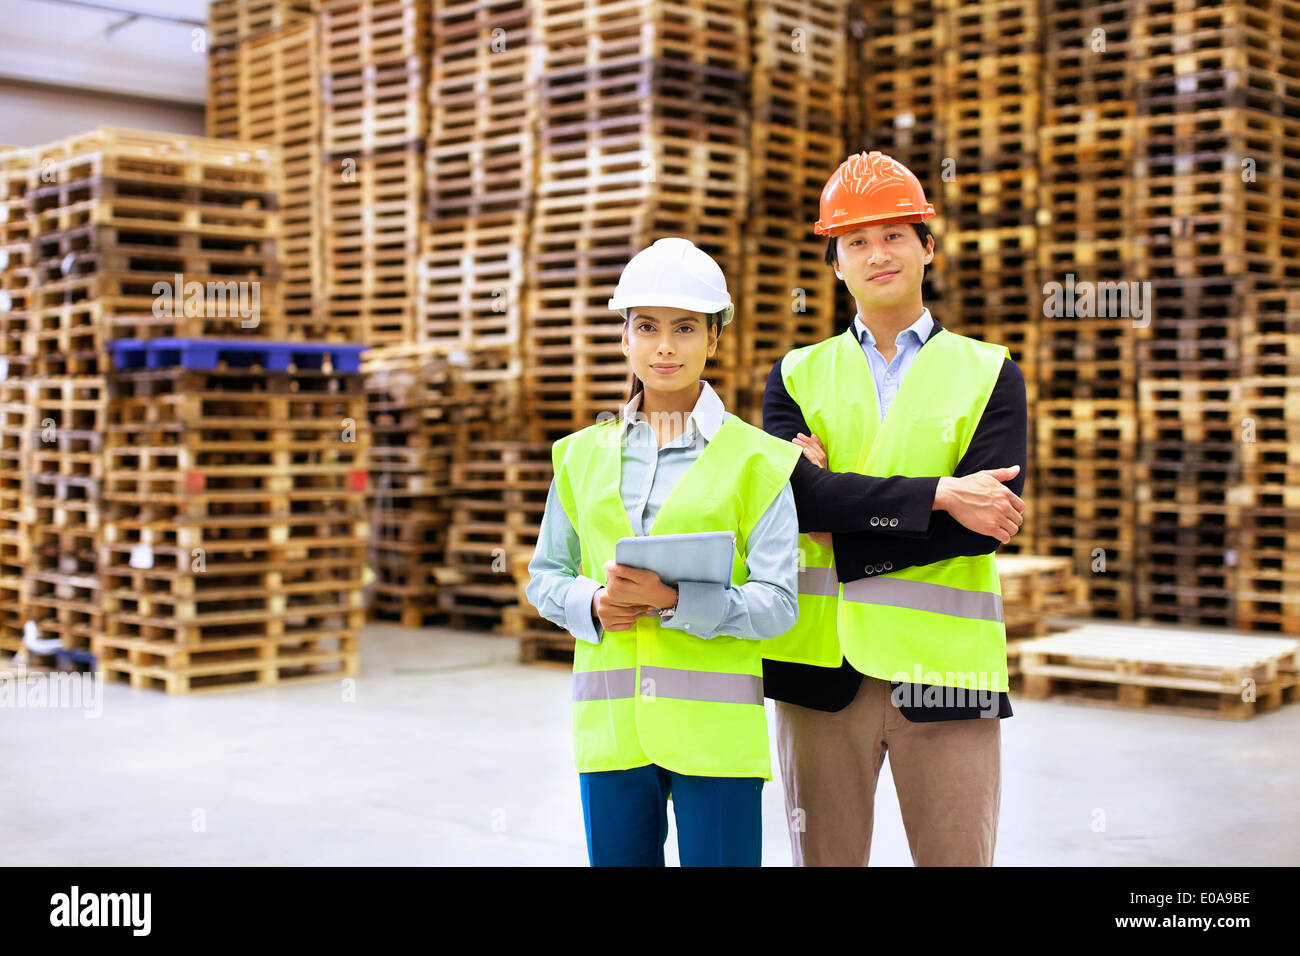 Portrait of male and female supervisors in distribution warehouse - Stock Image